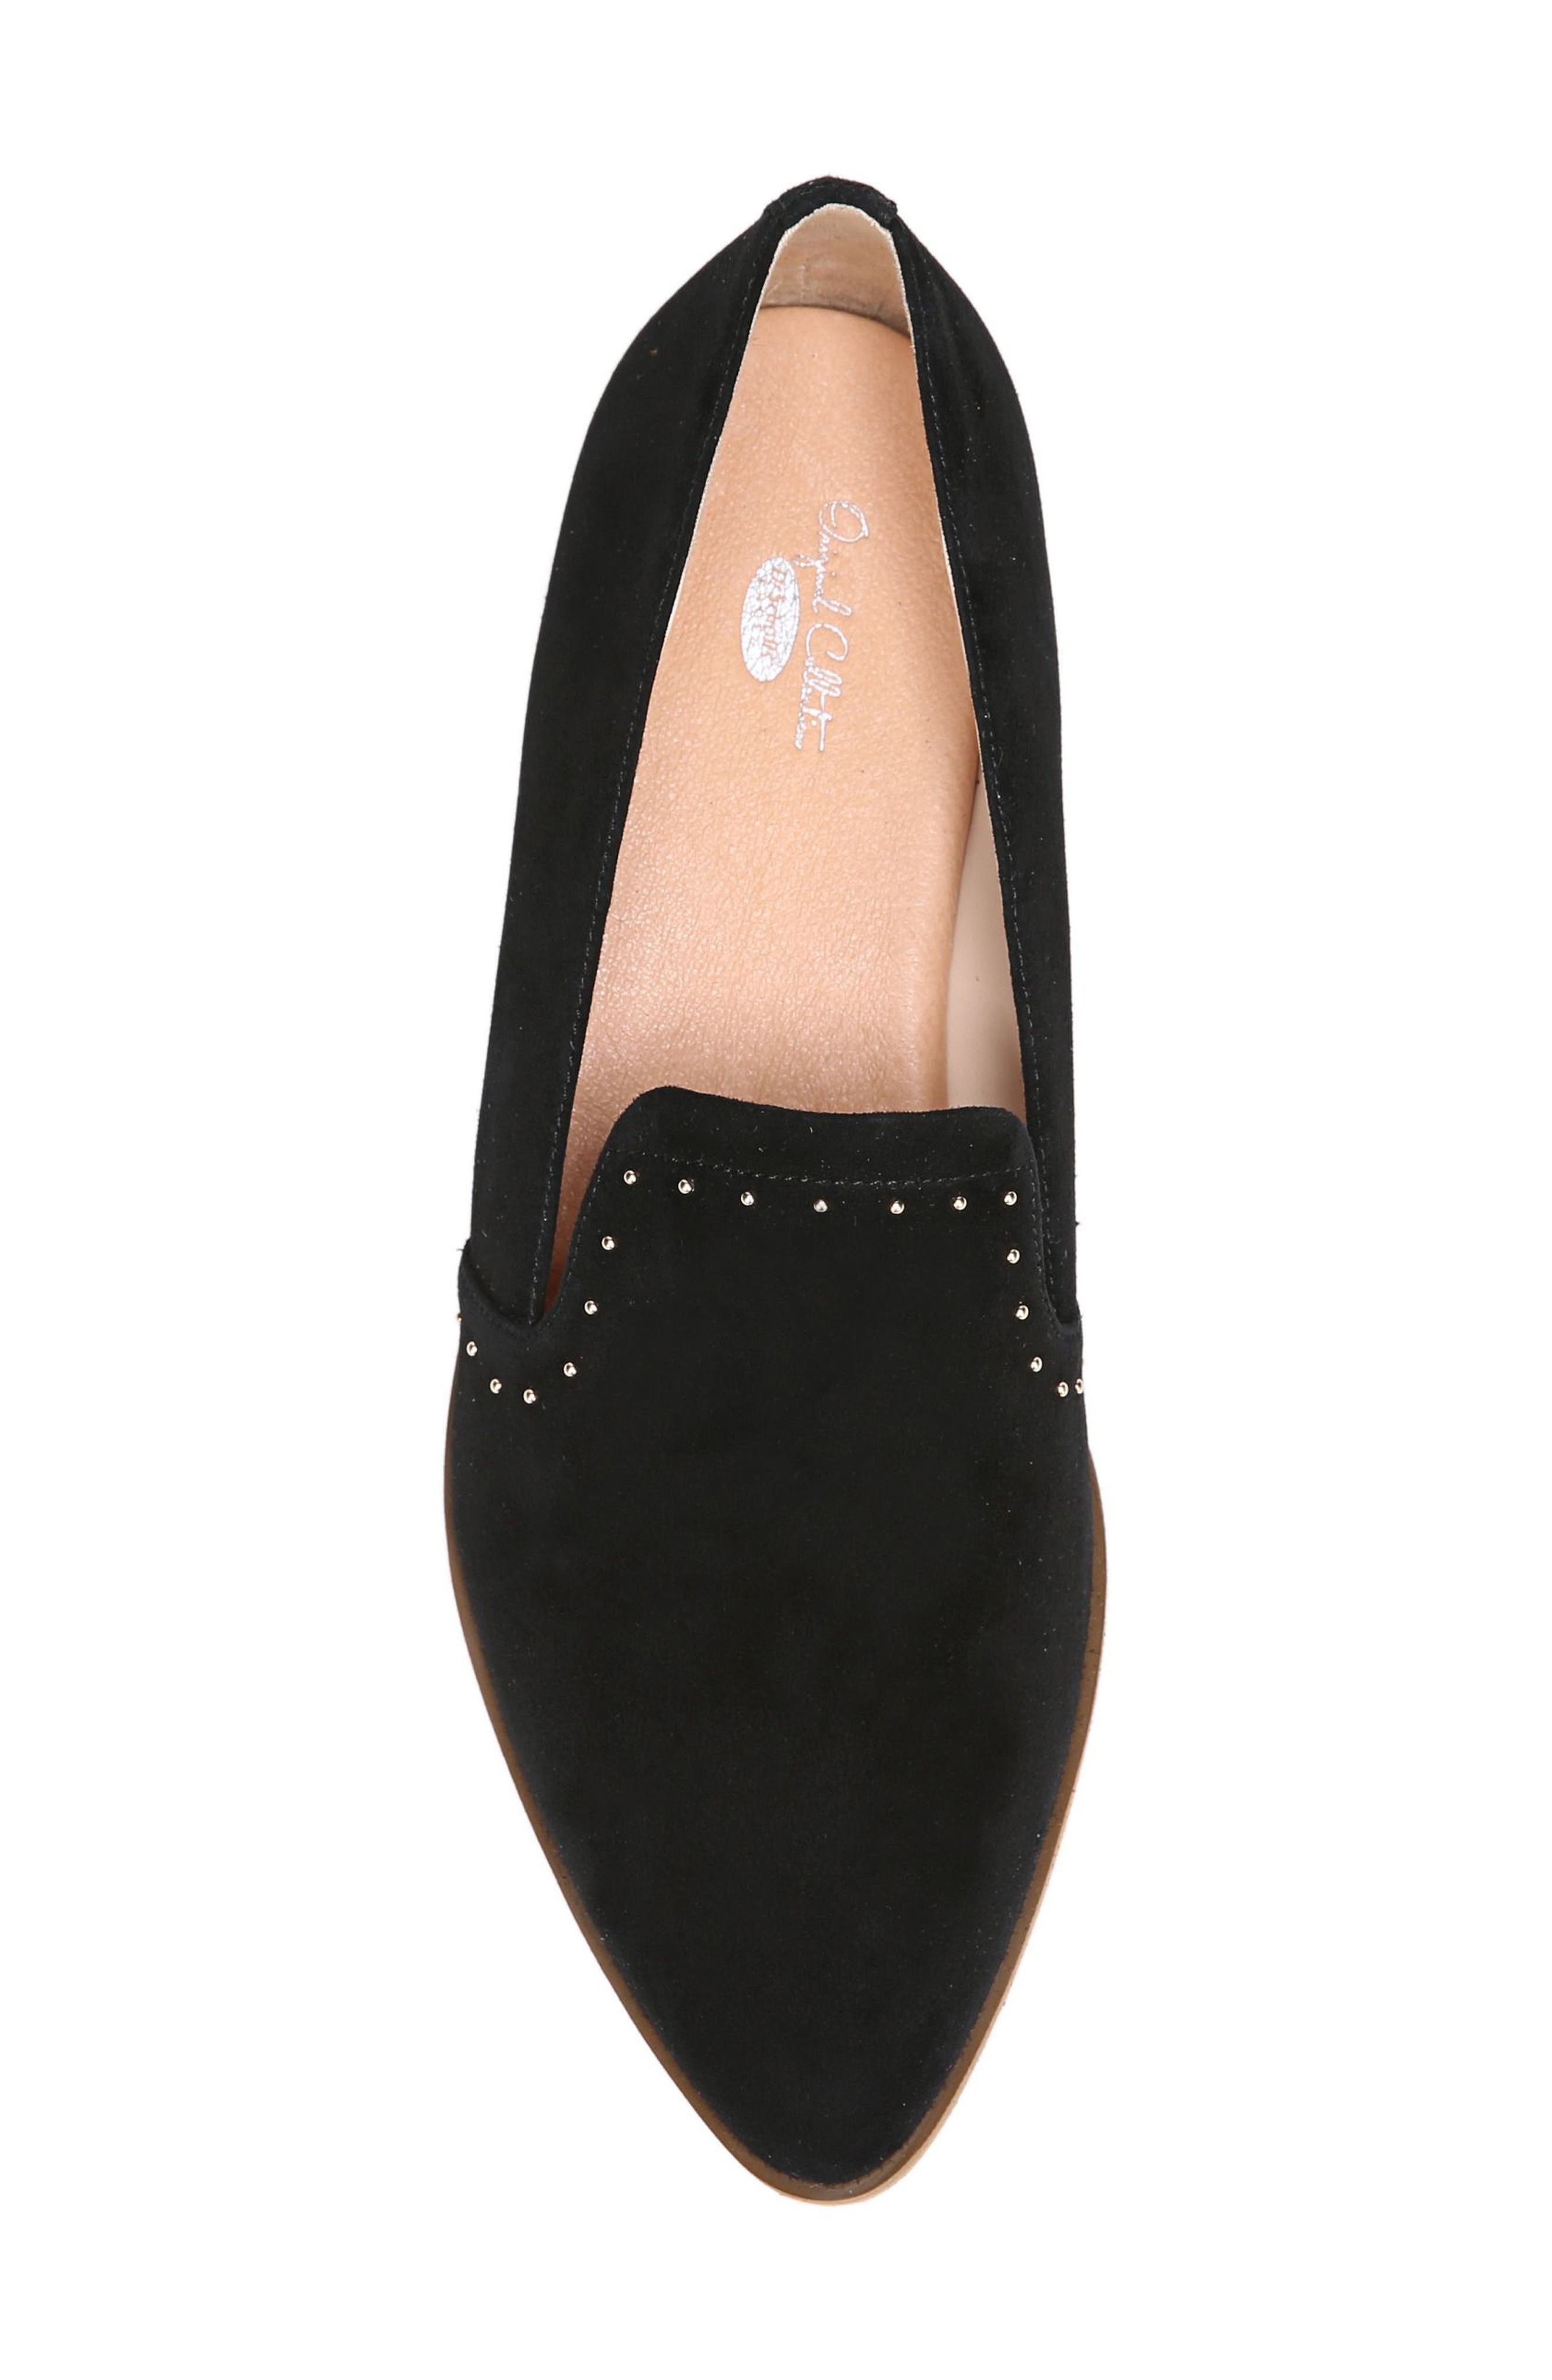 Keane Loafer Wedge,                             Alternate thumbnail 5, color,                             Black Suede